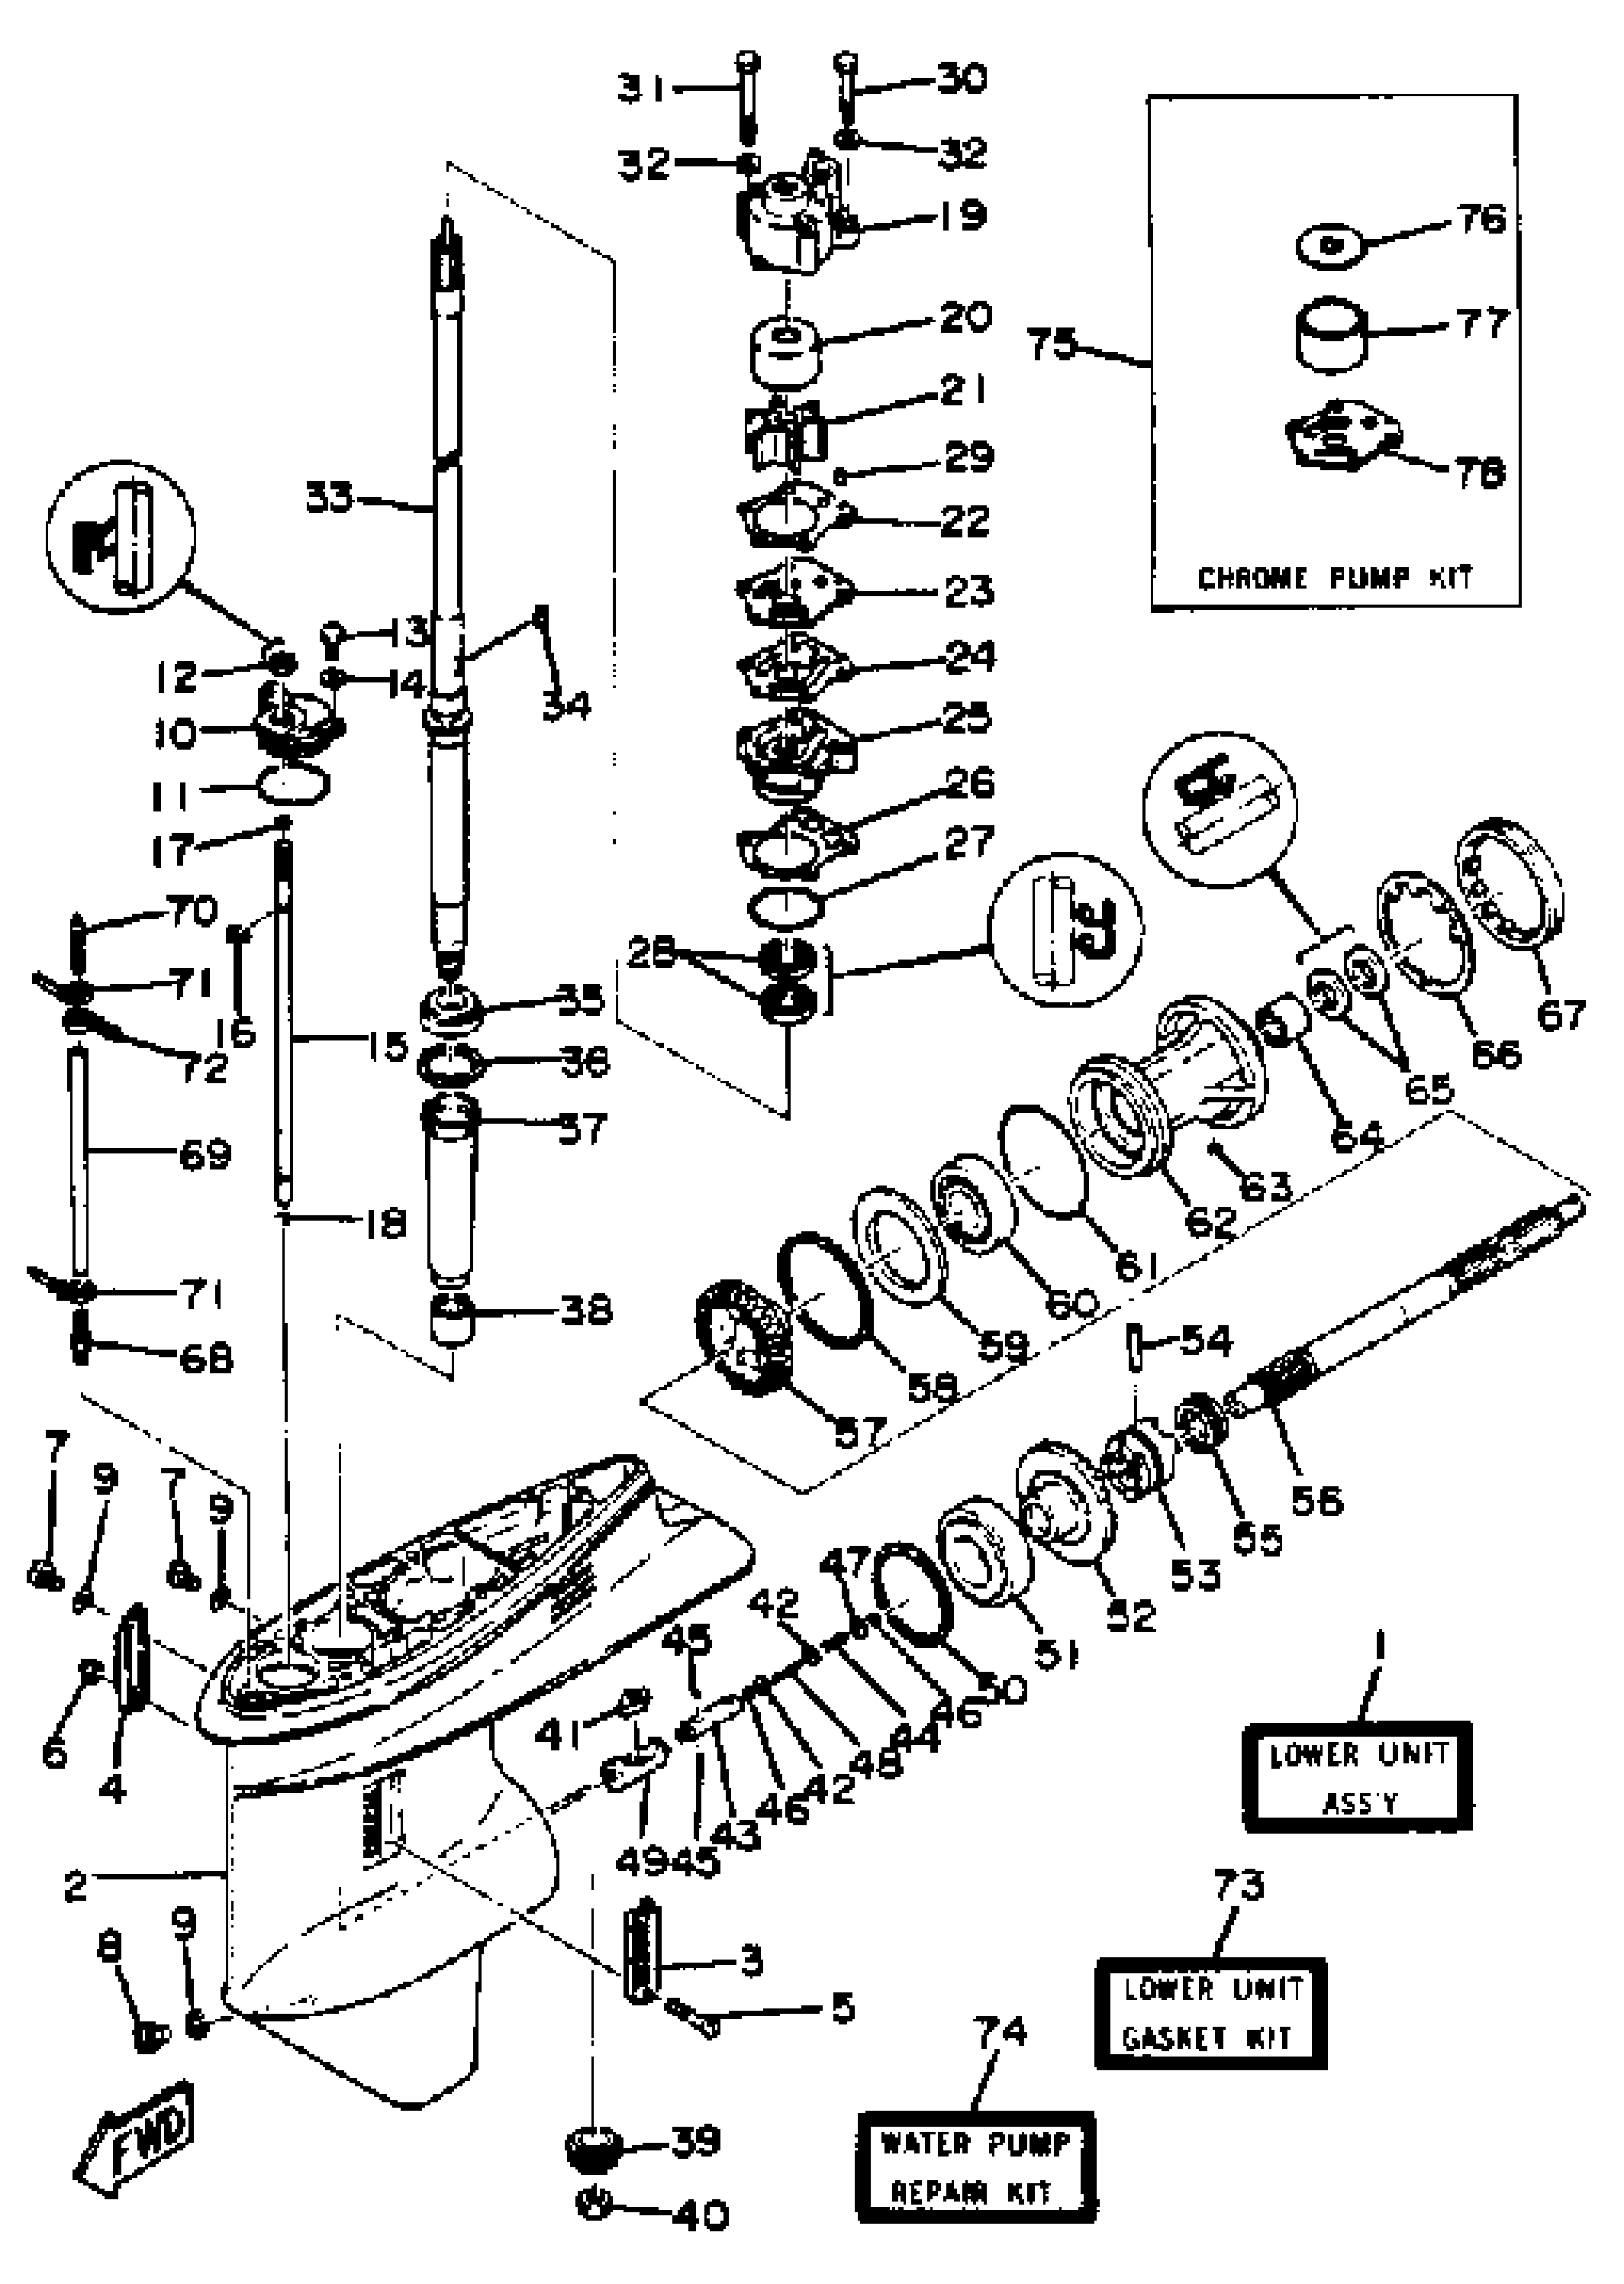 yamaha outboard motor parts diagram